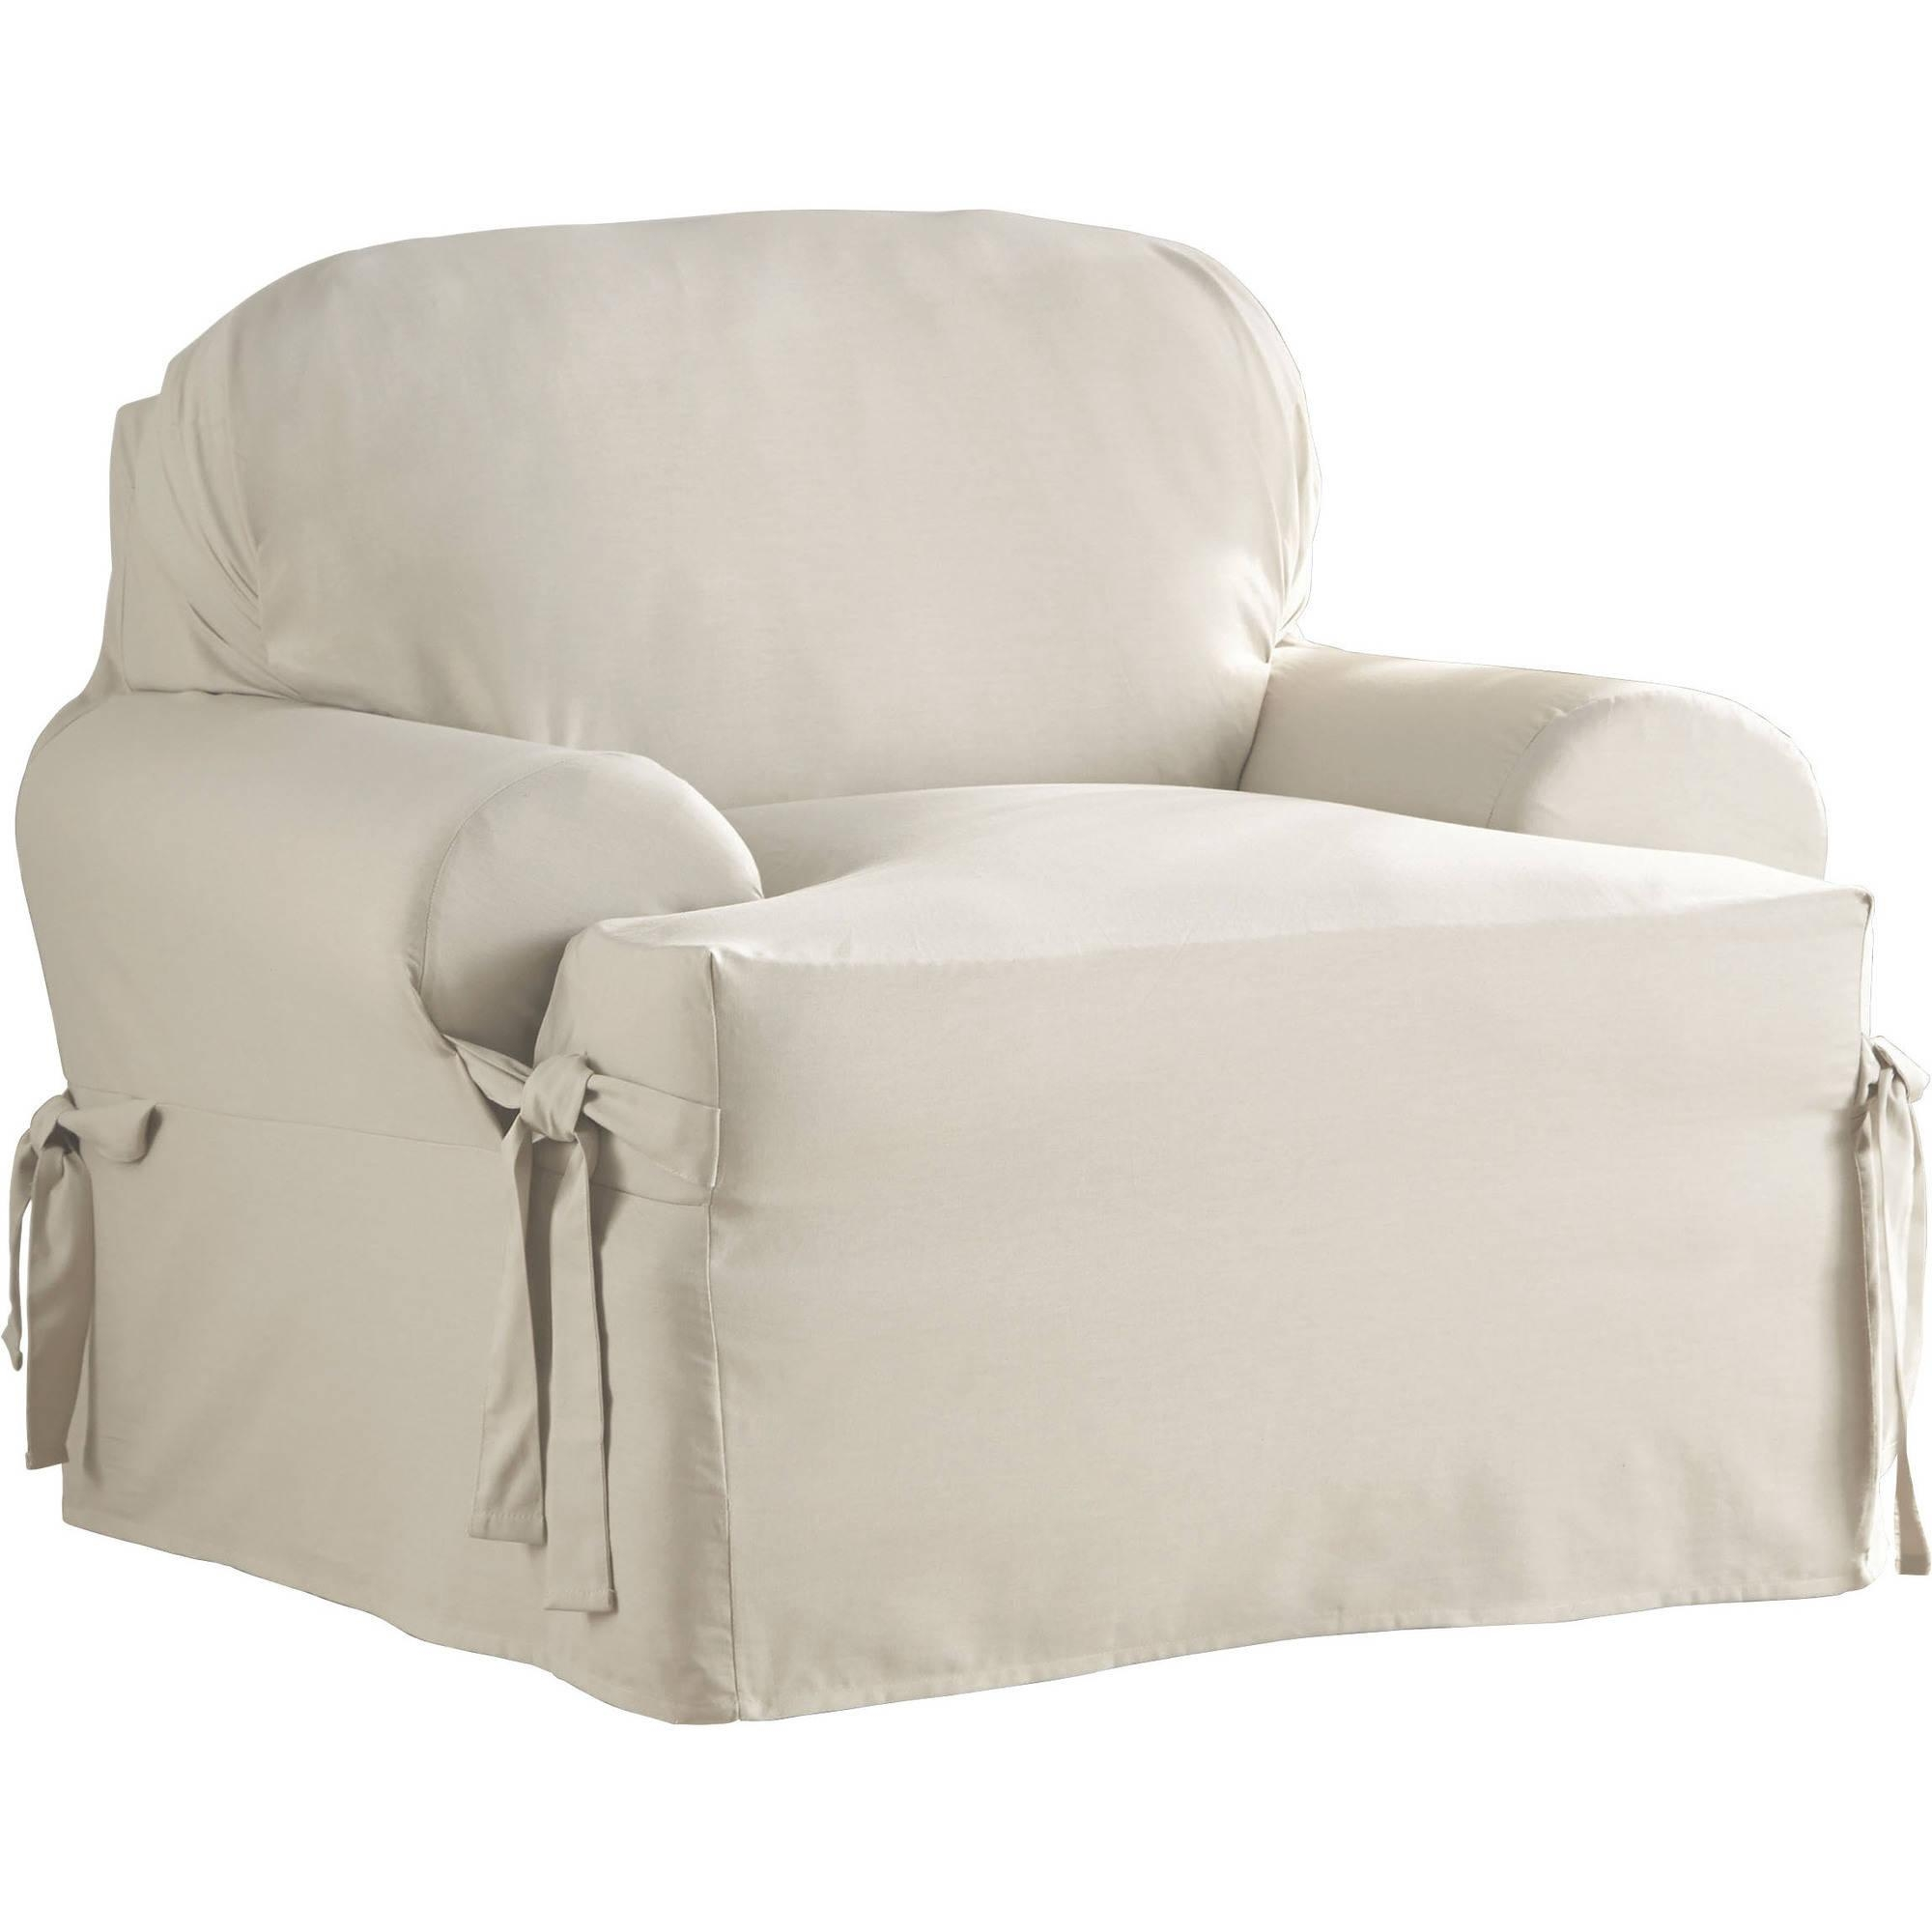 Slipcovers – Walmart Throughout T Cushion Slipcovers For Large Sofas (View 13 of 20)